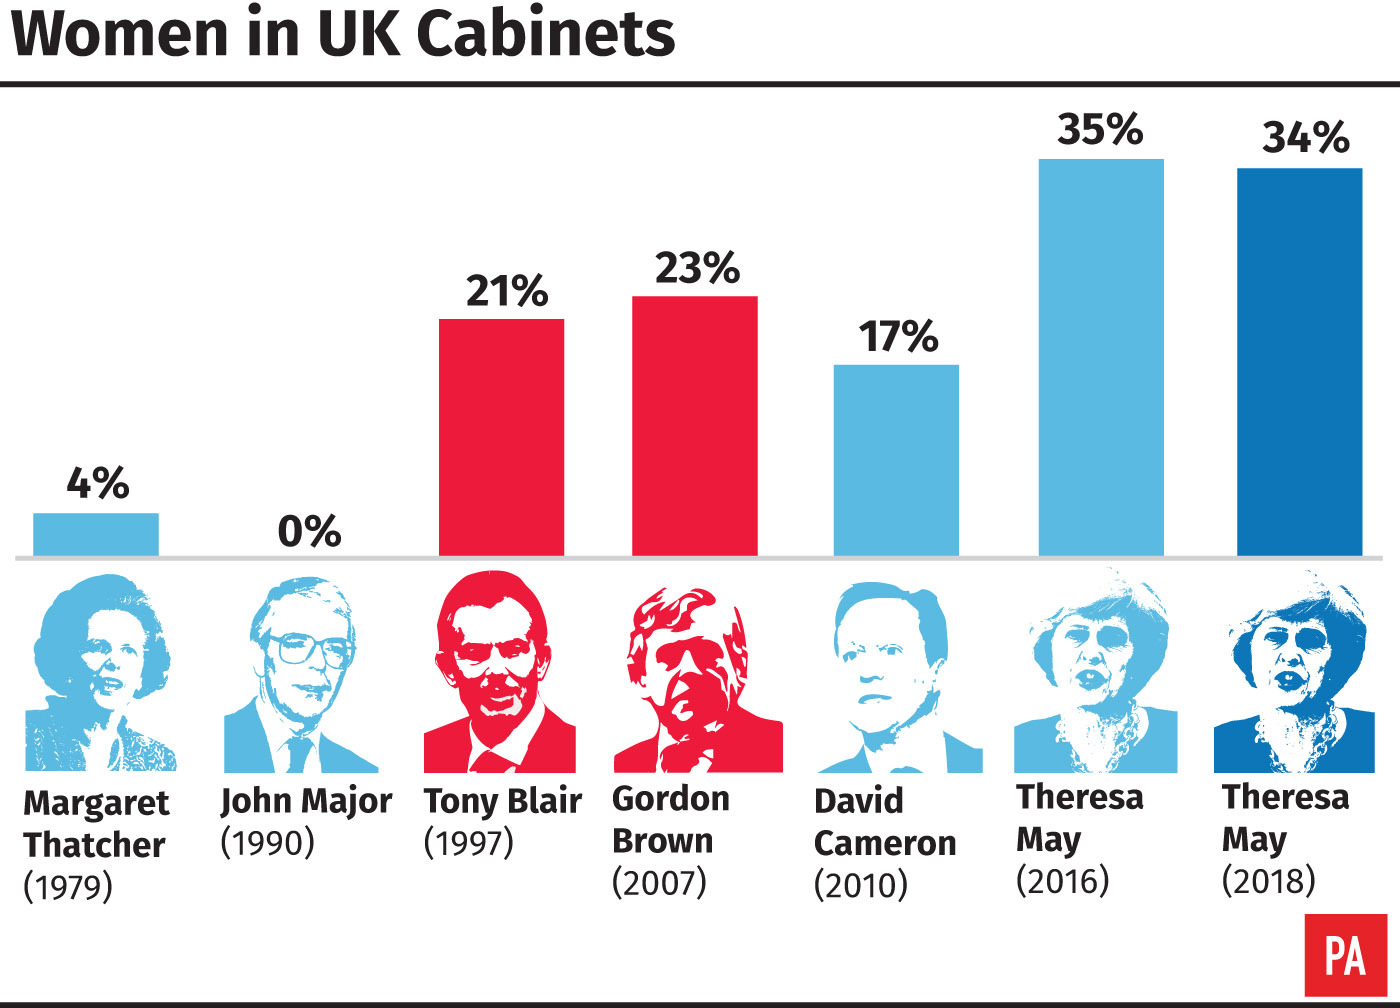 Women in UK Cabinets over the years. (PA)